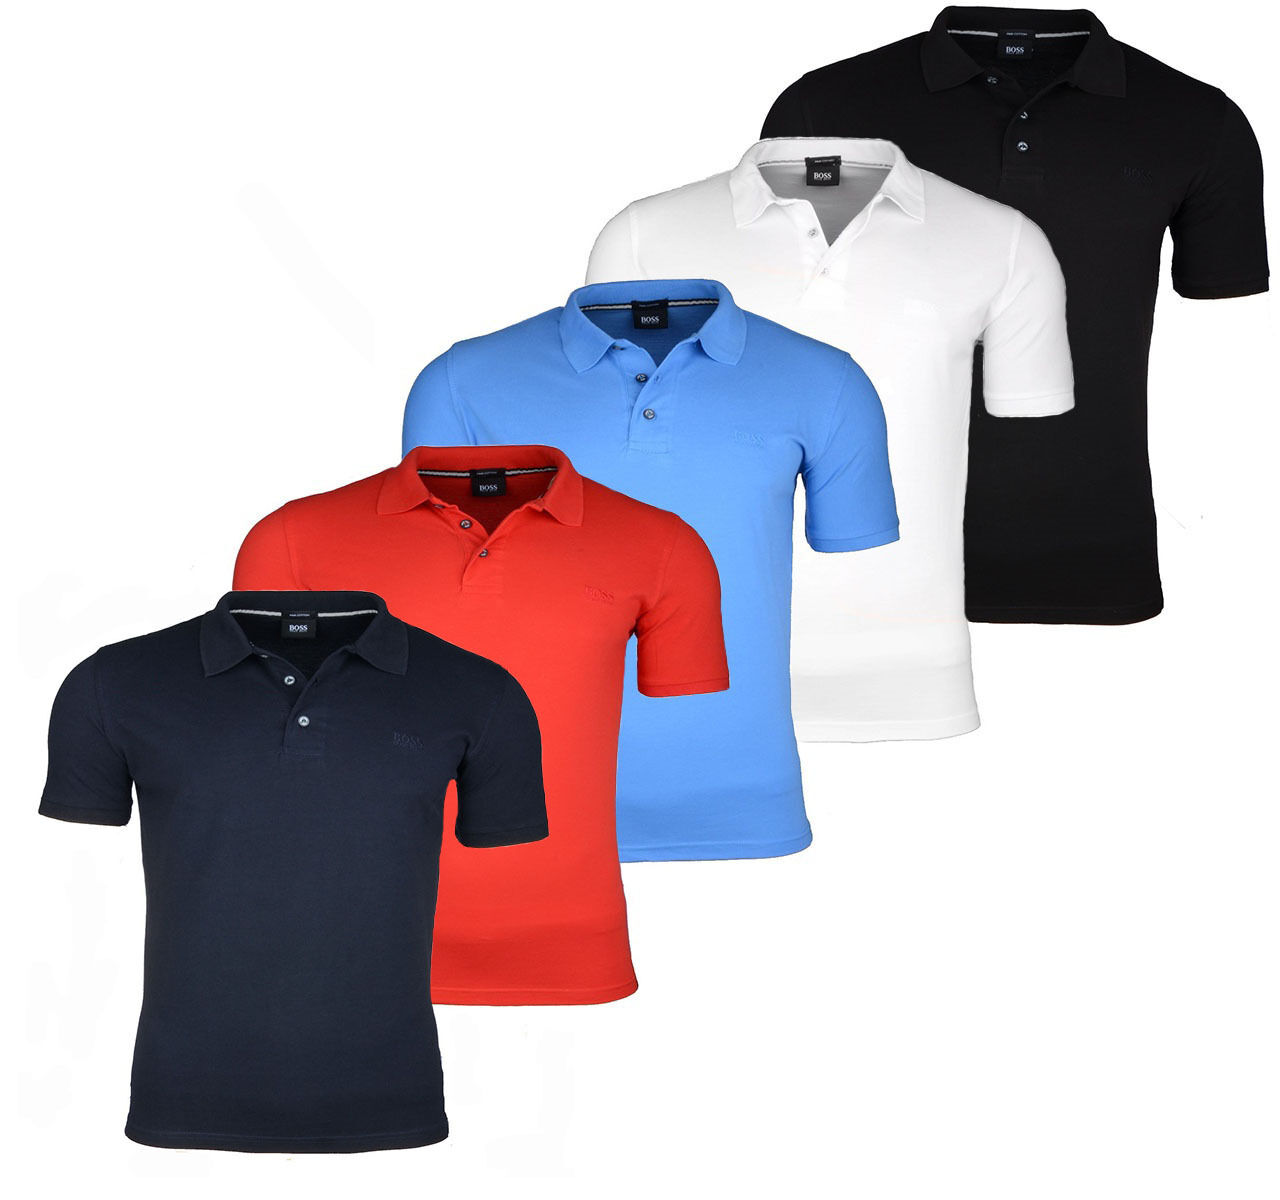 Hugo boss herren polo shirt aus pique baumwolle regular for Hugo boss polo shirts xxl